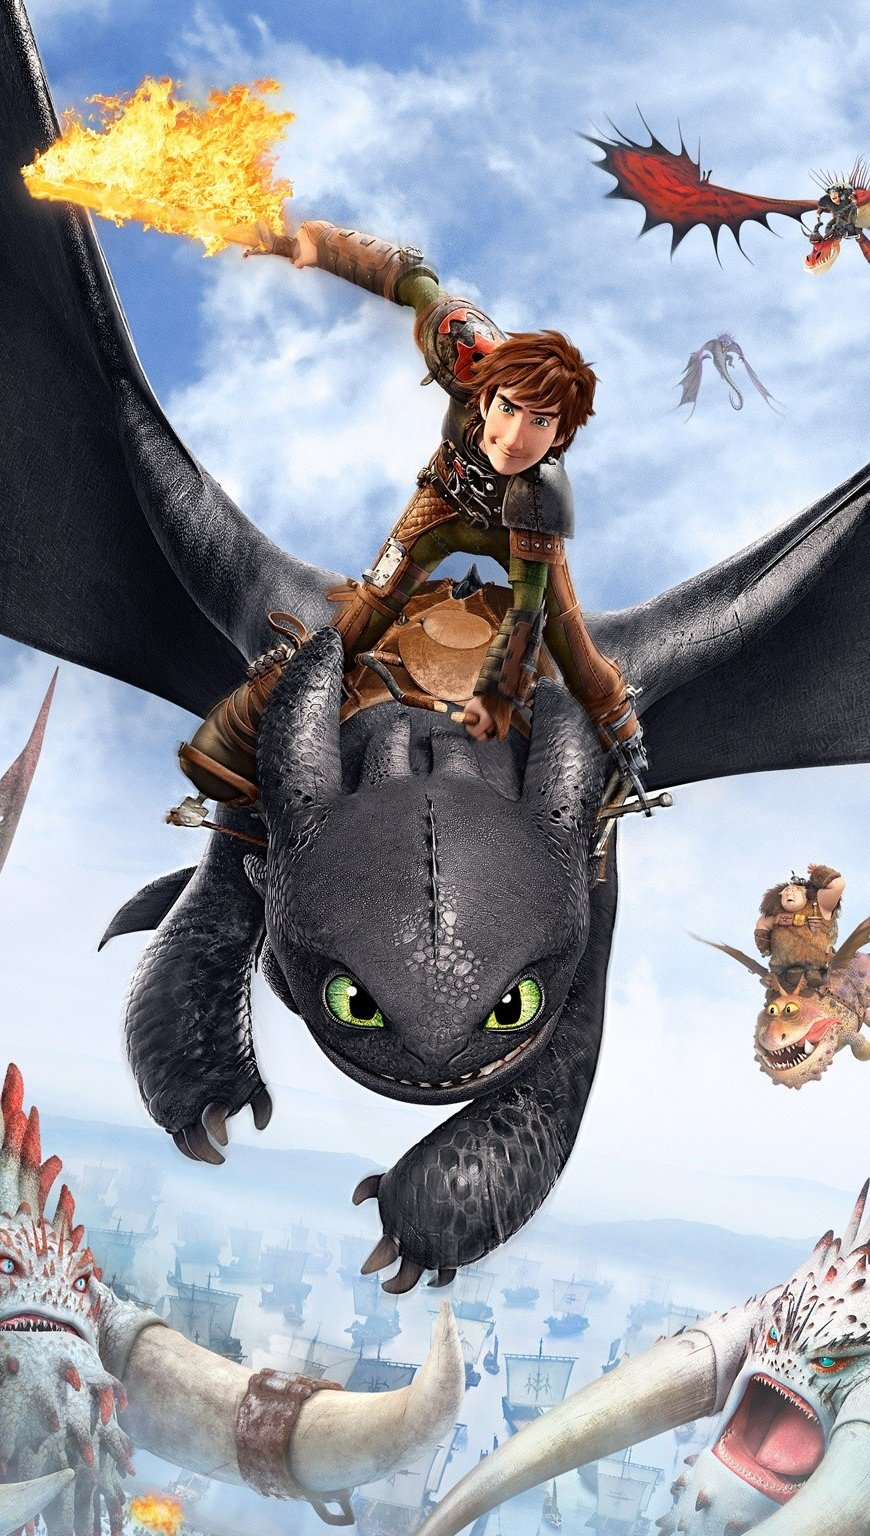 Wallpaper Poster of How to train your dragon Vertical